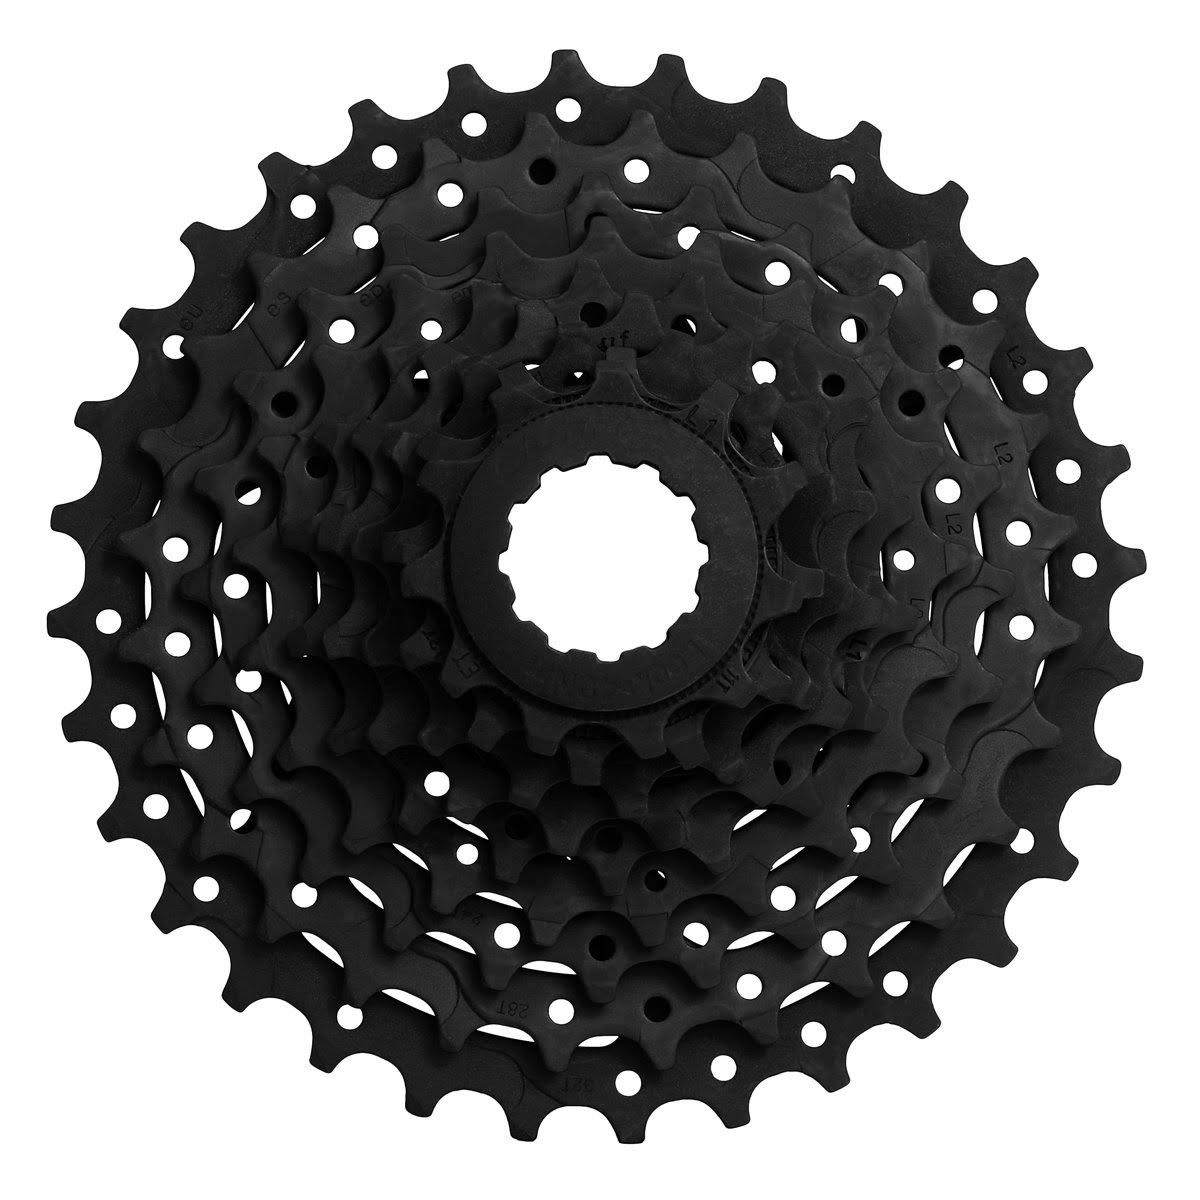 SunRace Cs M90 Bicycle Cassettes, Black, 9 Speed, 11-34t